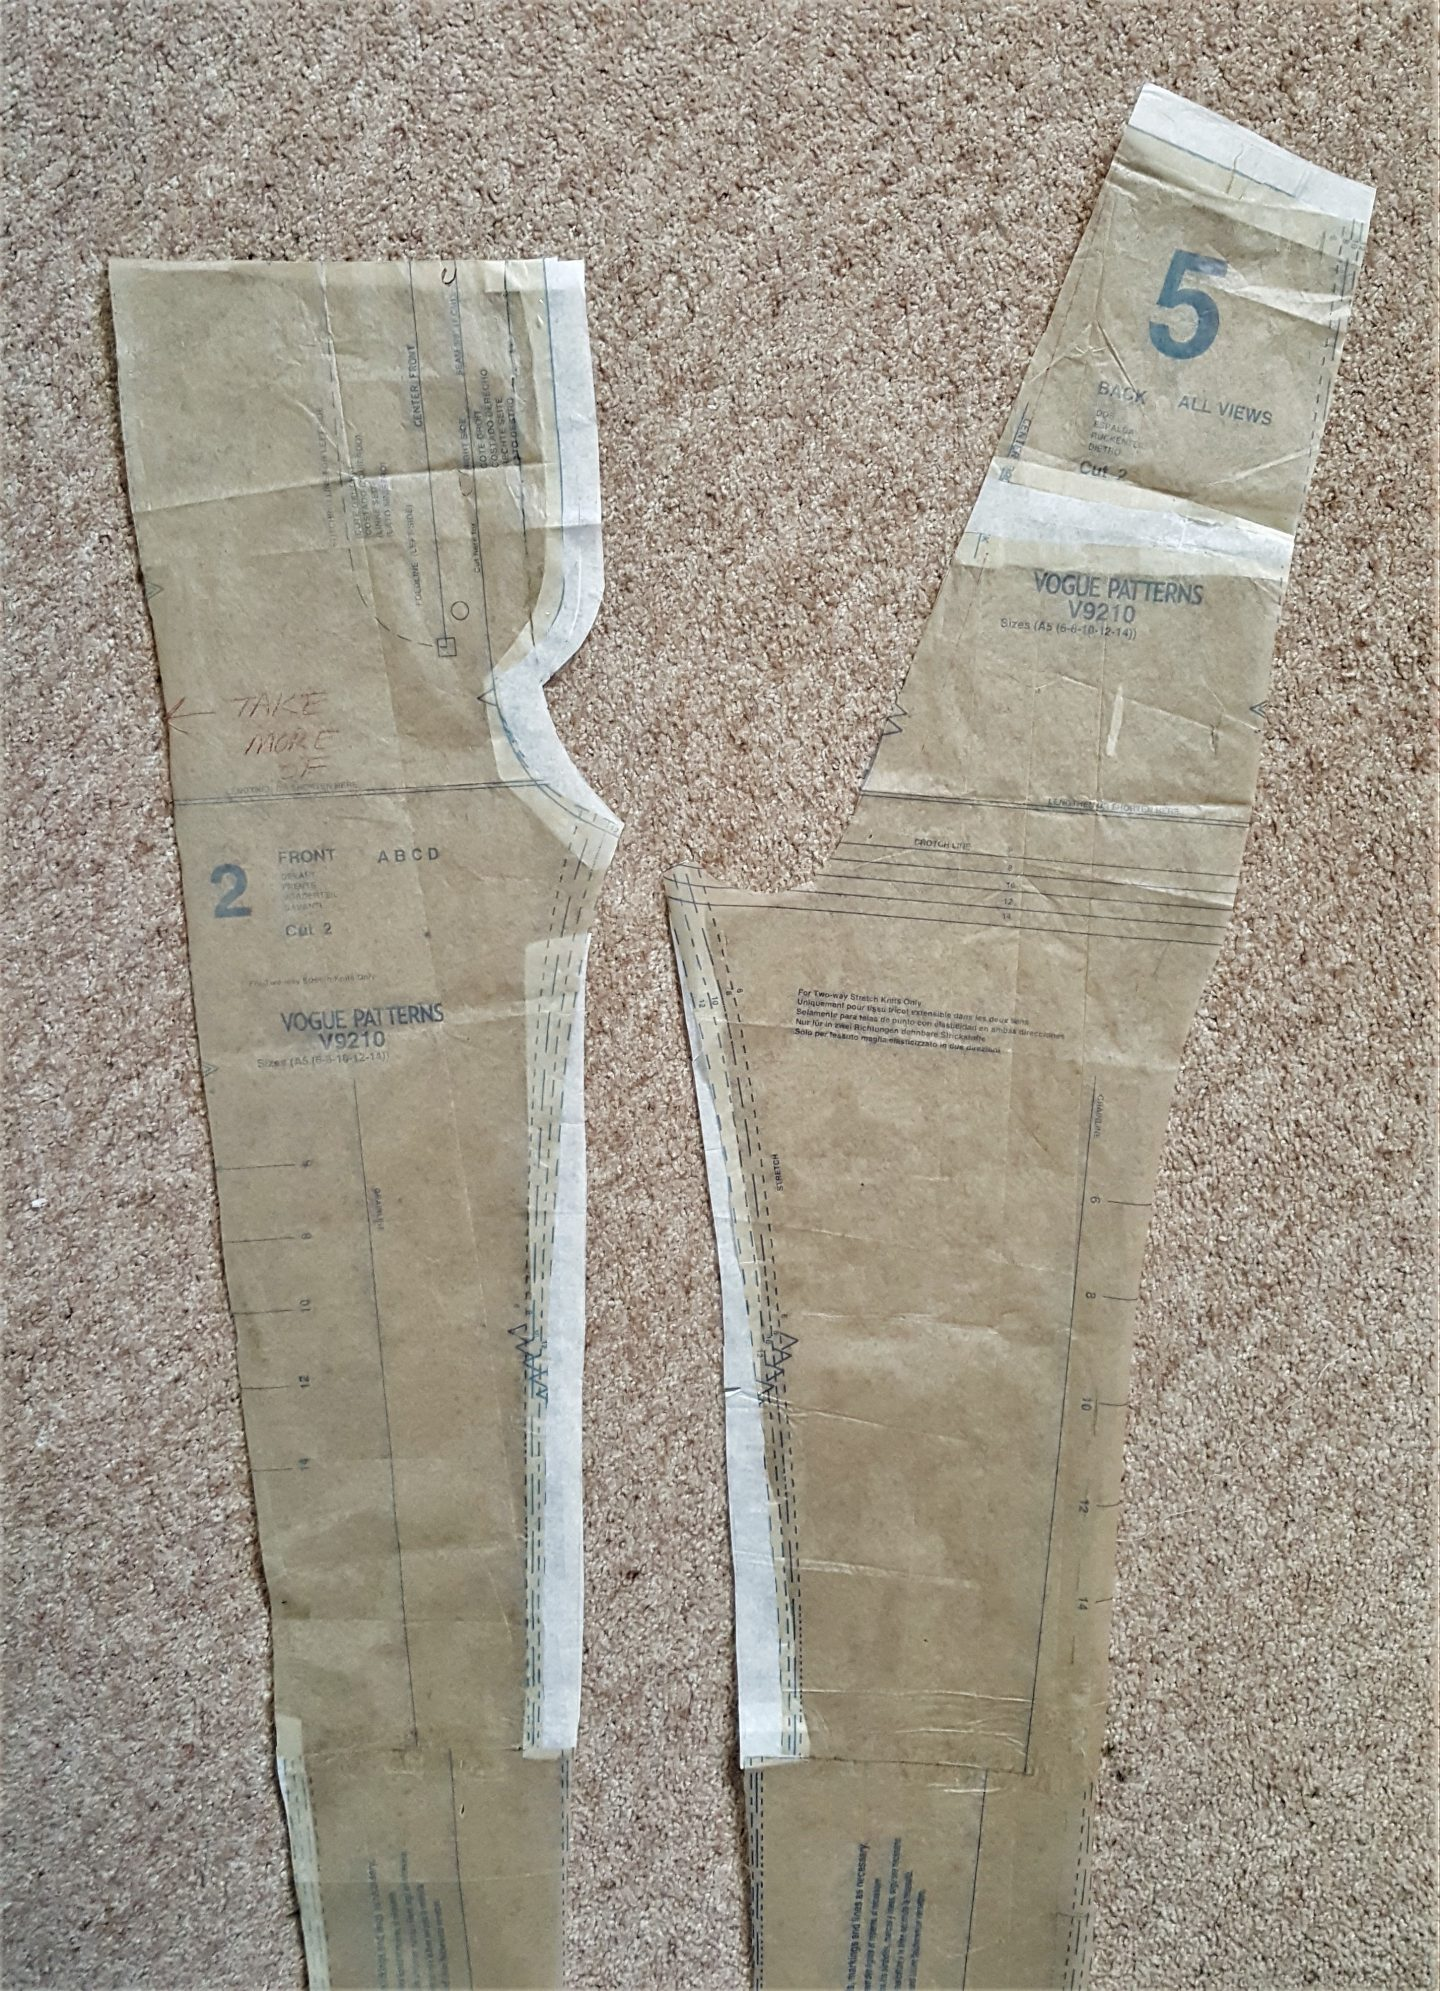 Knock-knee and crotch curve pattern adjustments for leopard print skinny pants using Vogue 9210